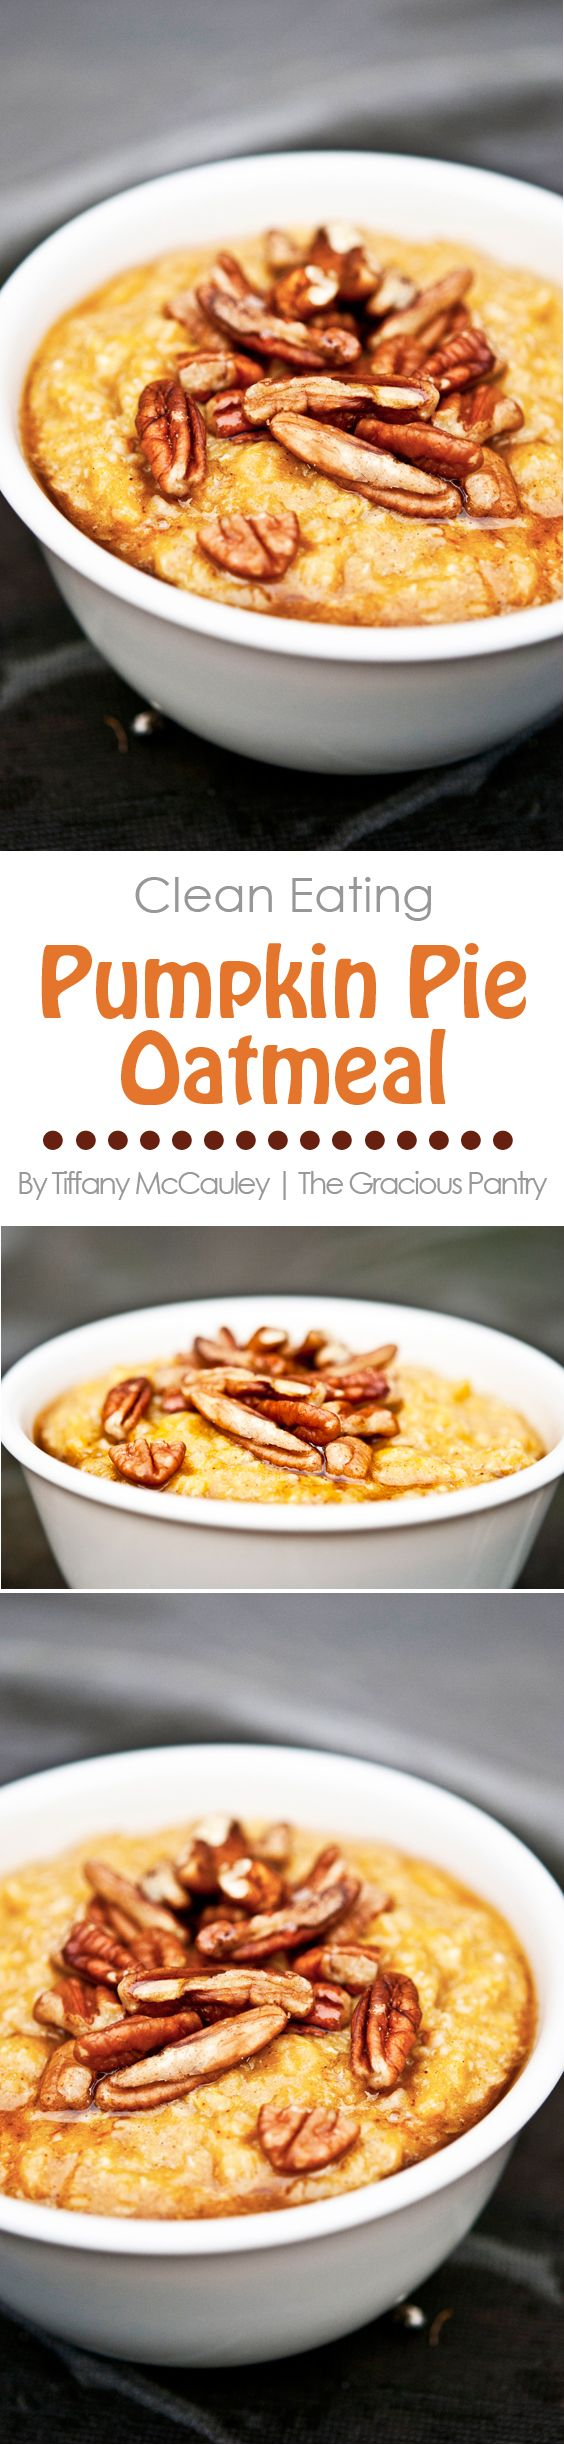 This deliciousClean Eating Pumpkin Pie Oatmeal is just like having pumpkin pie for breakfast! Delicious!